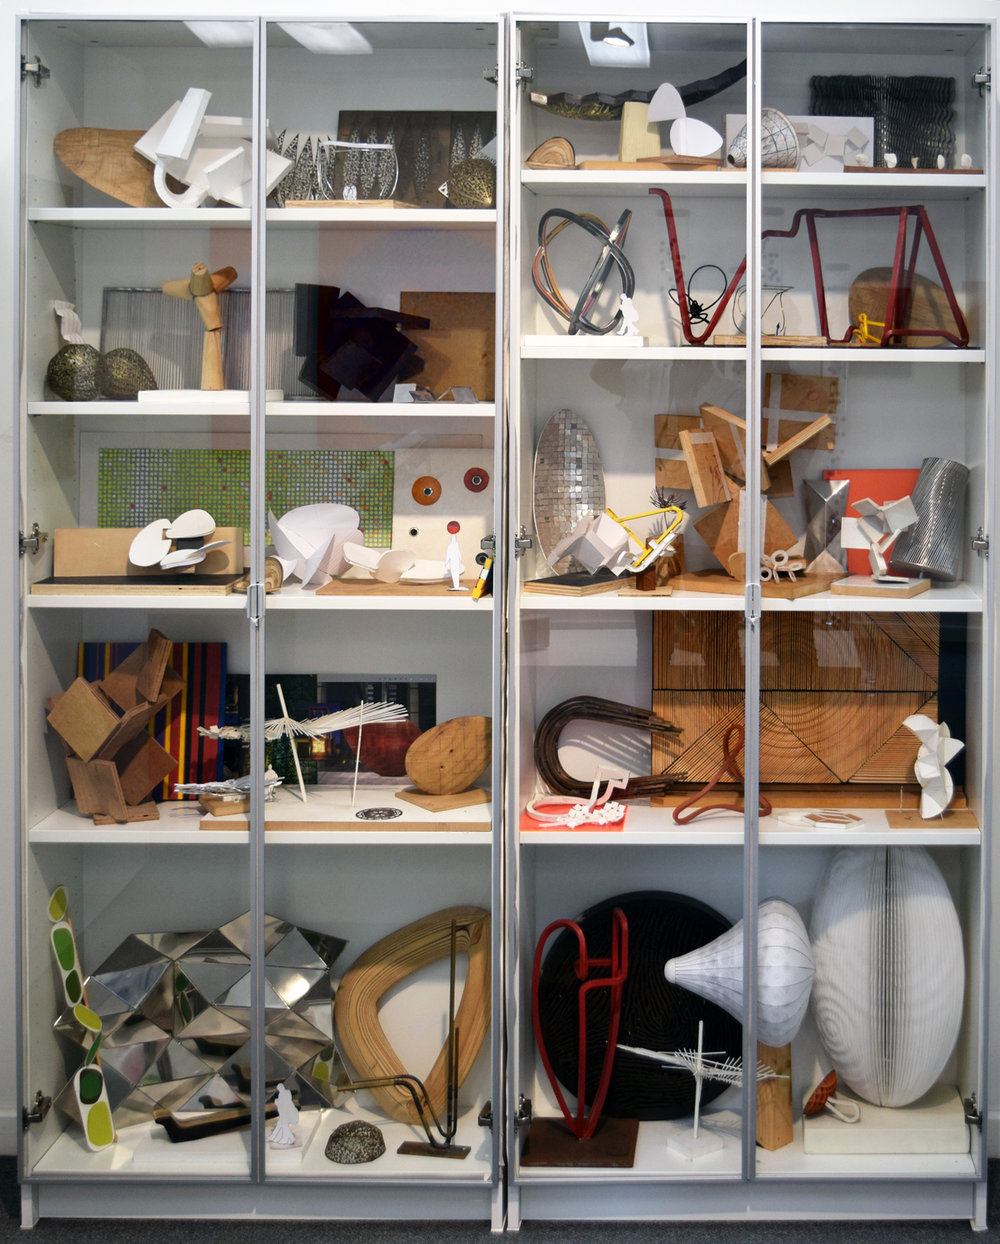 49. Stuart Green, 'Two Cabinets of Sketch and Development Models', 2002-17, mixed media, NFS